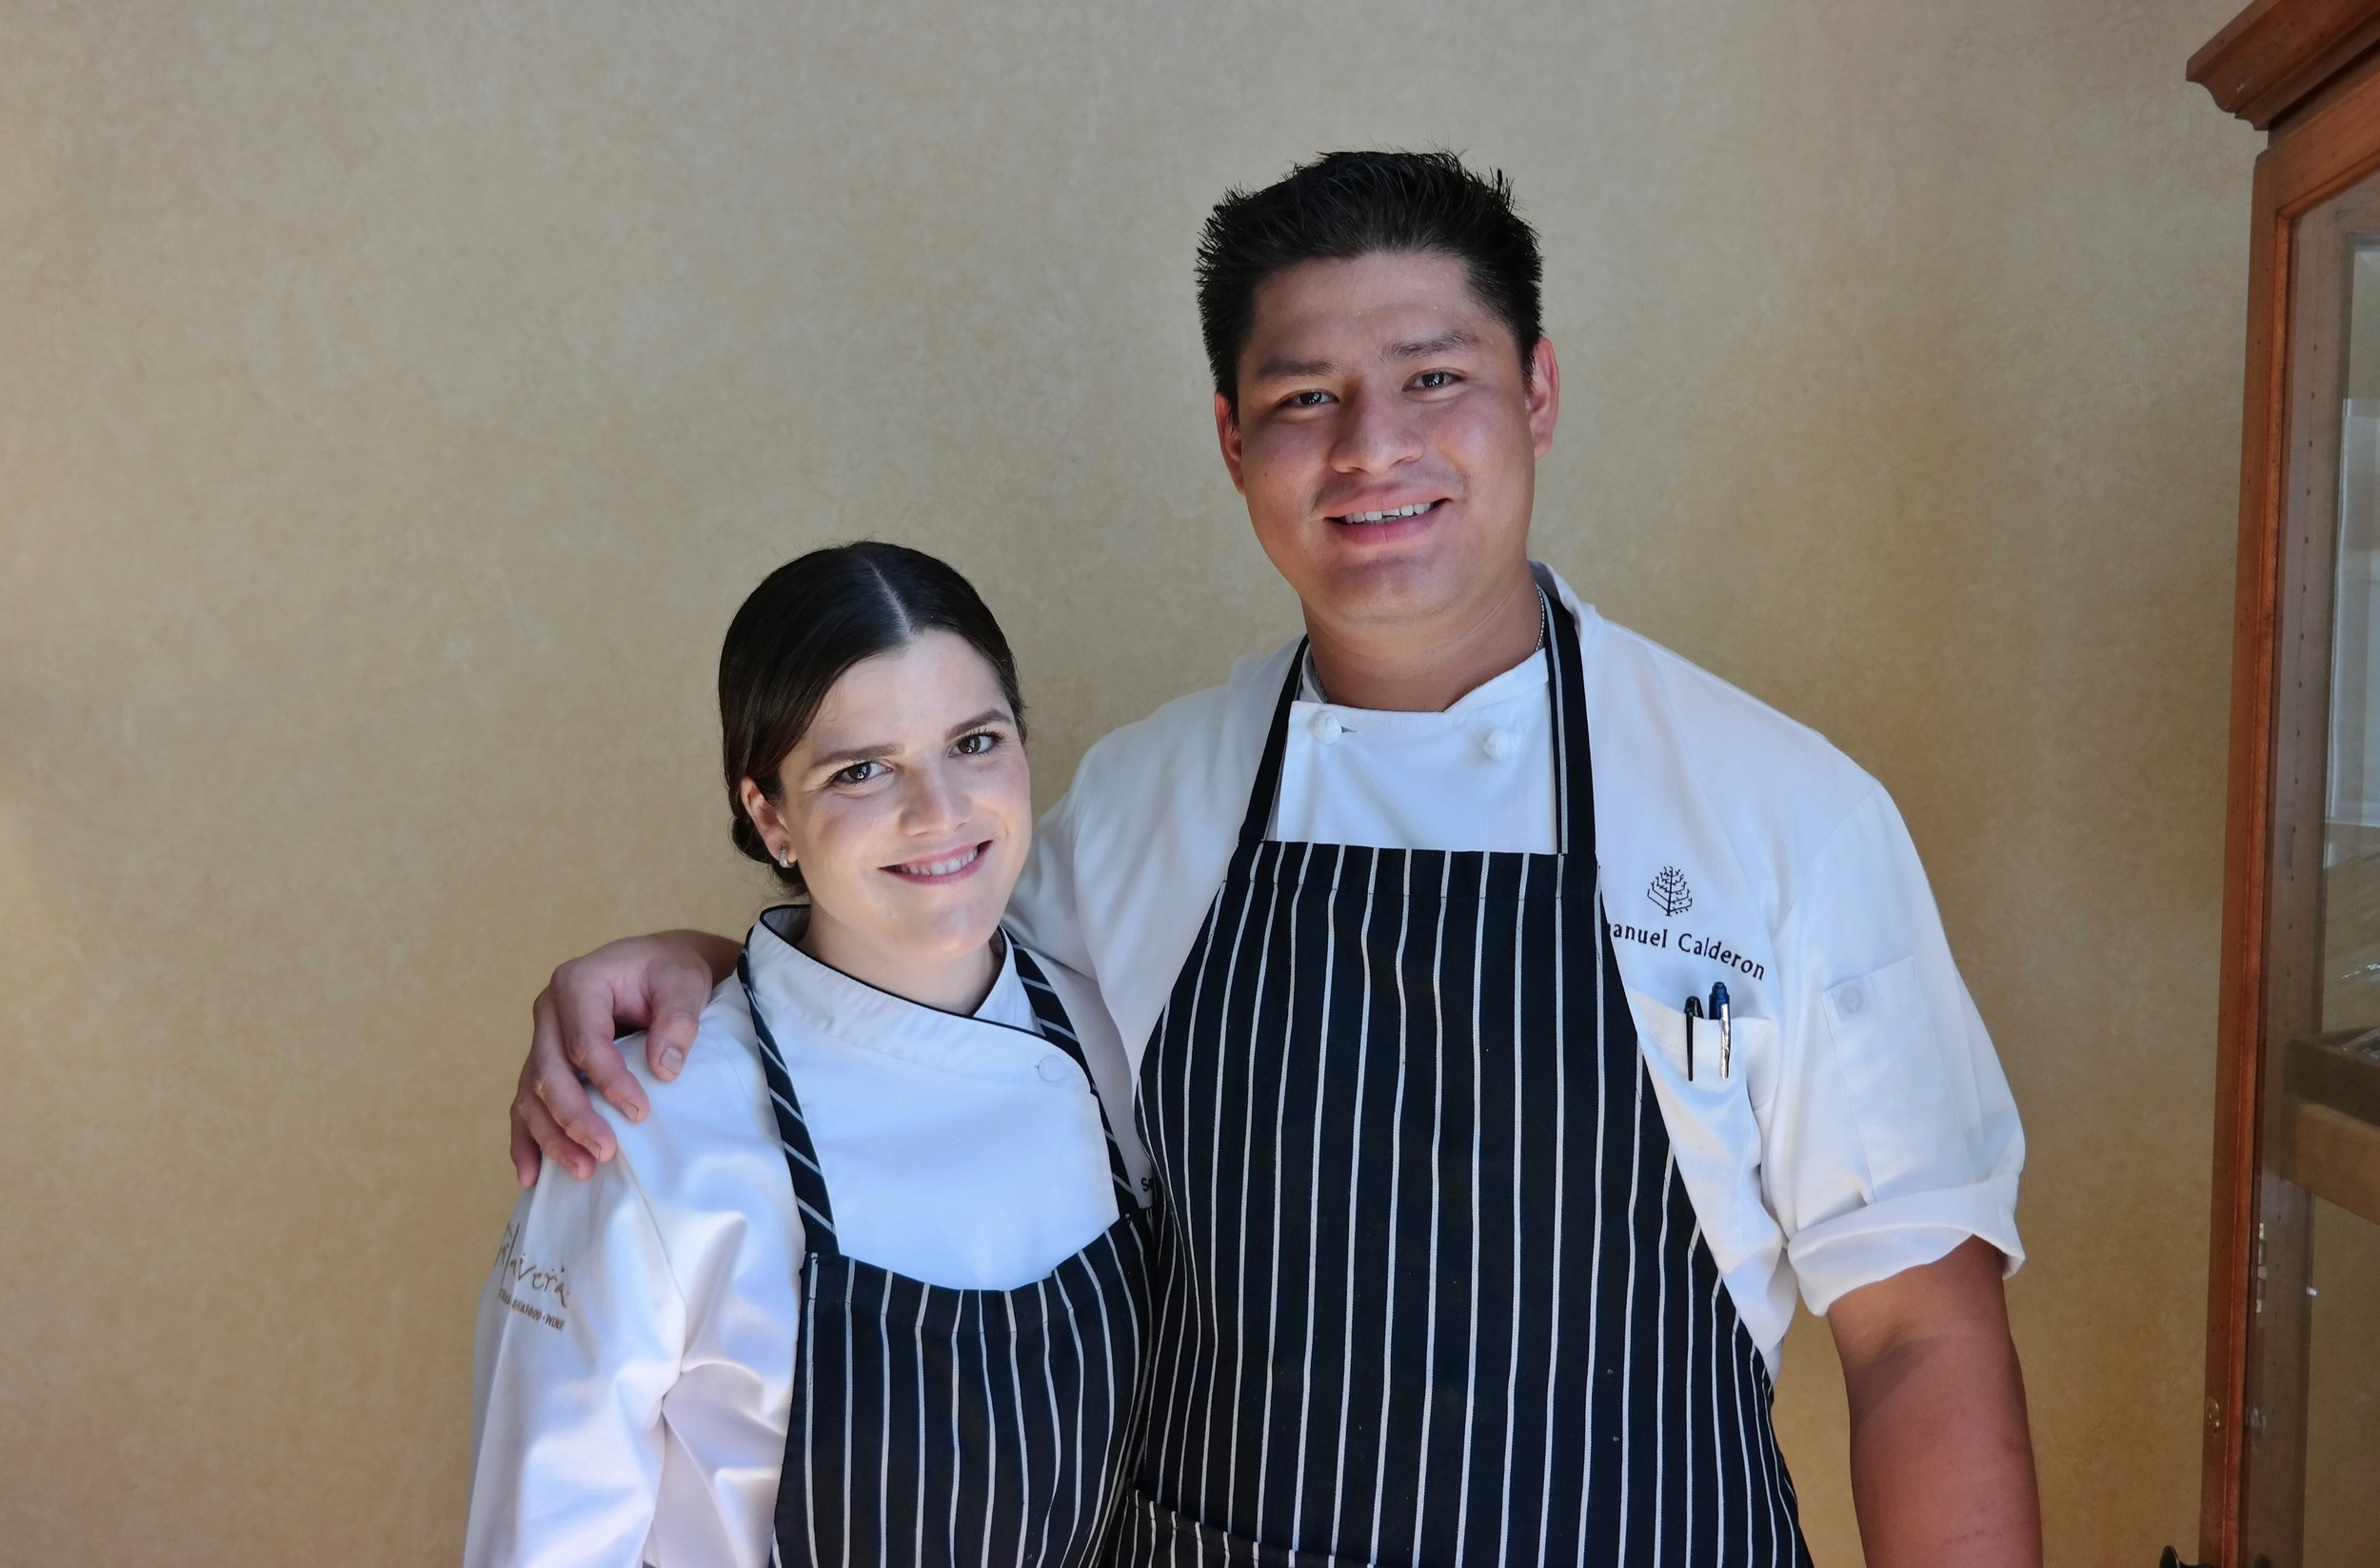 Chefs Samantha Sanz and Manuel Calderon of the Four Seasons